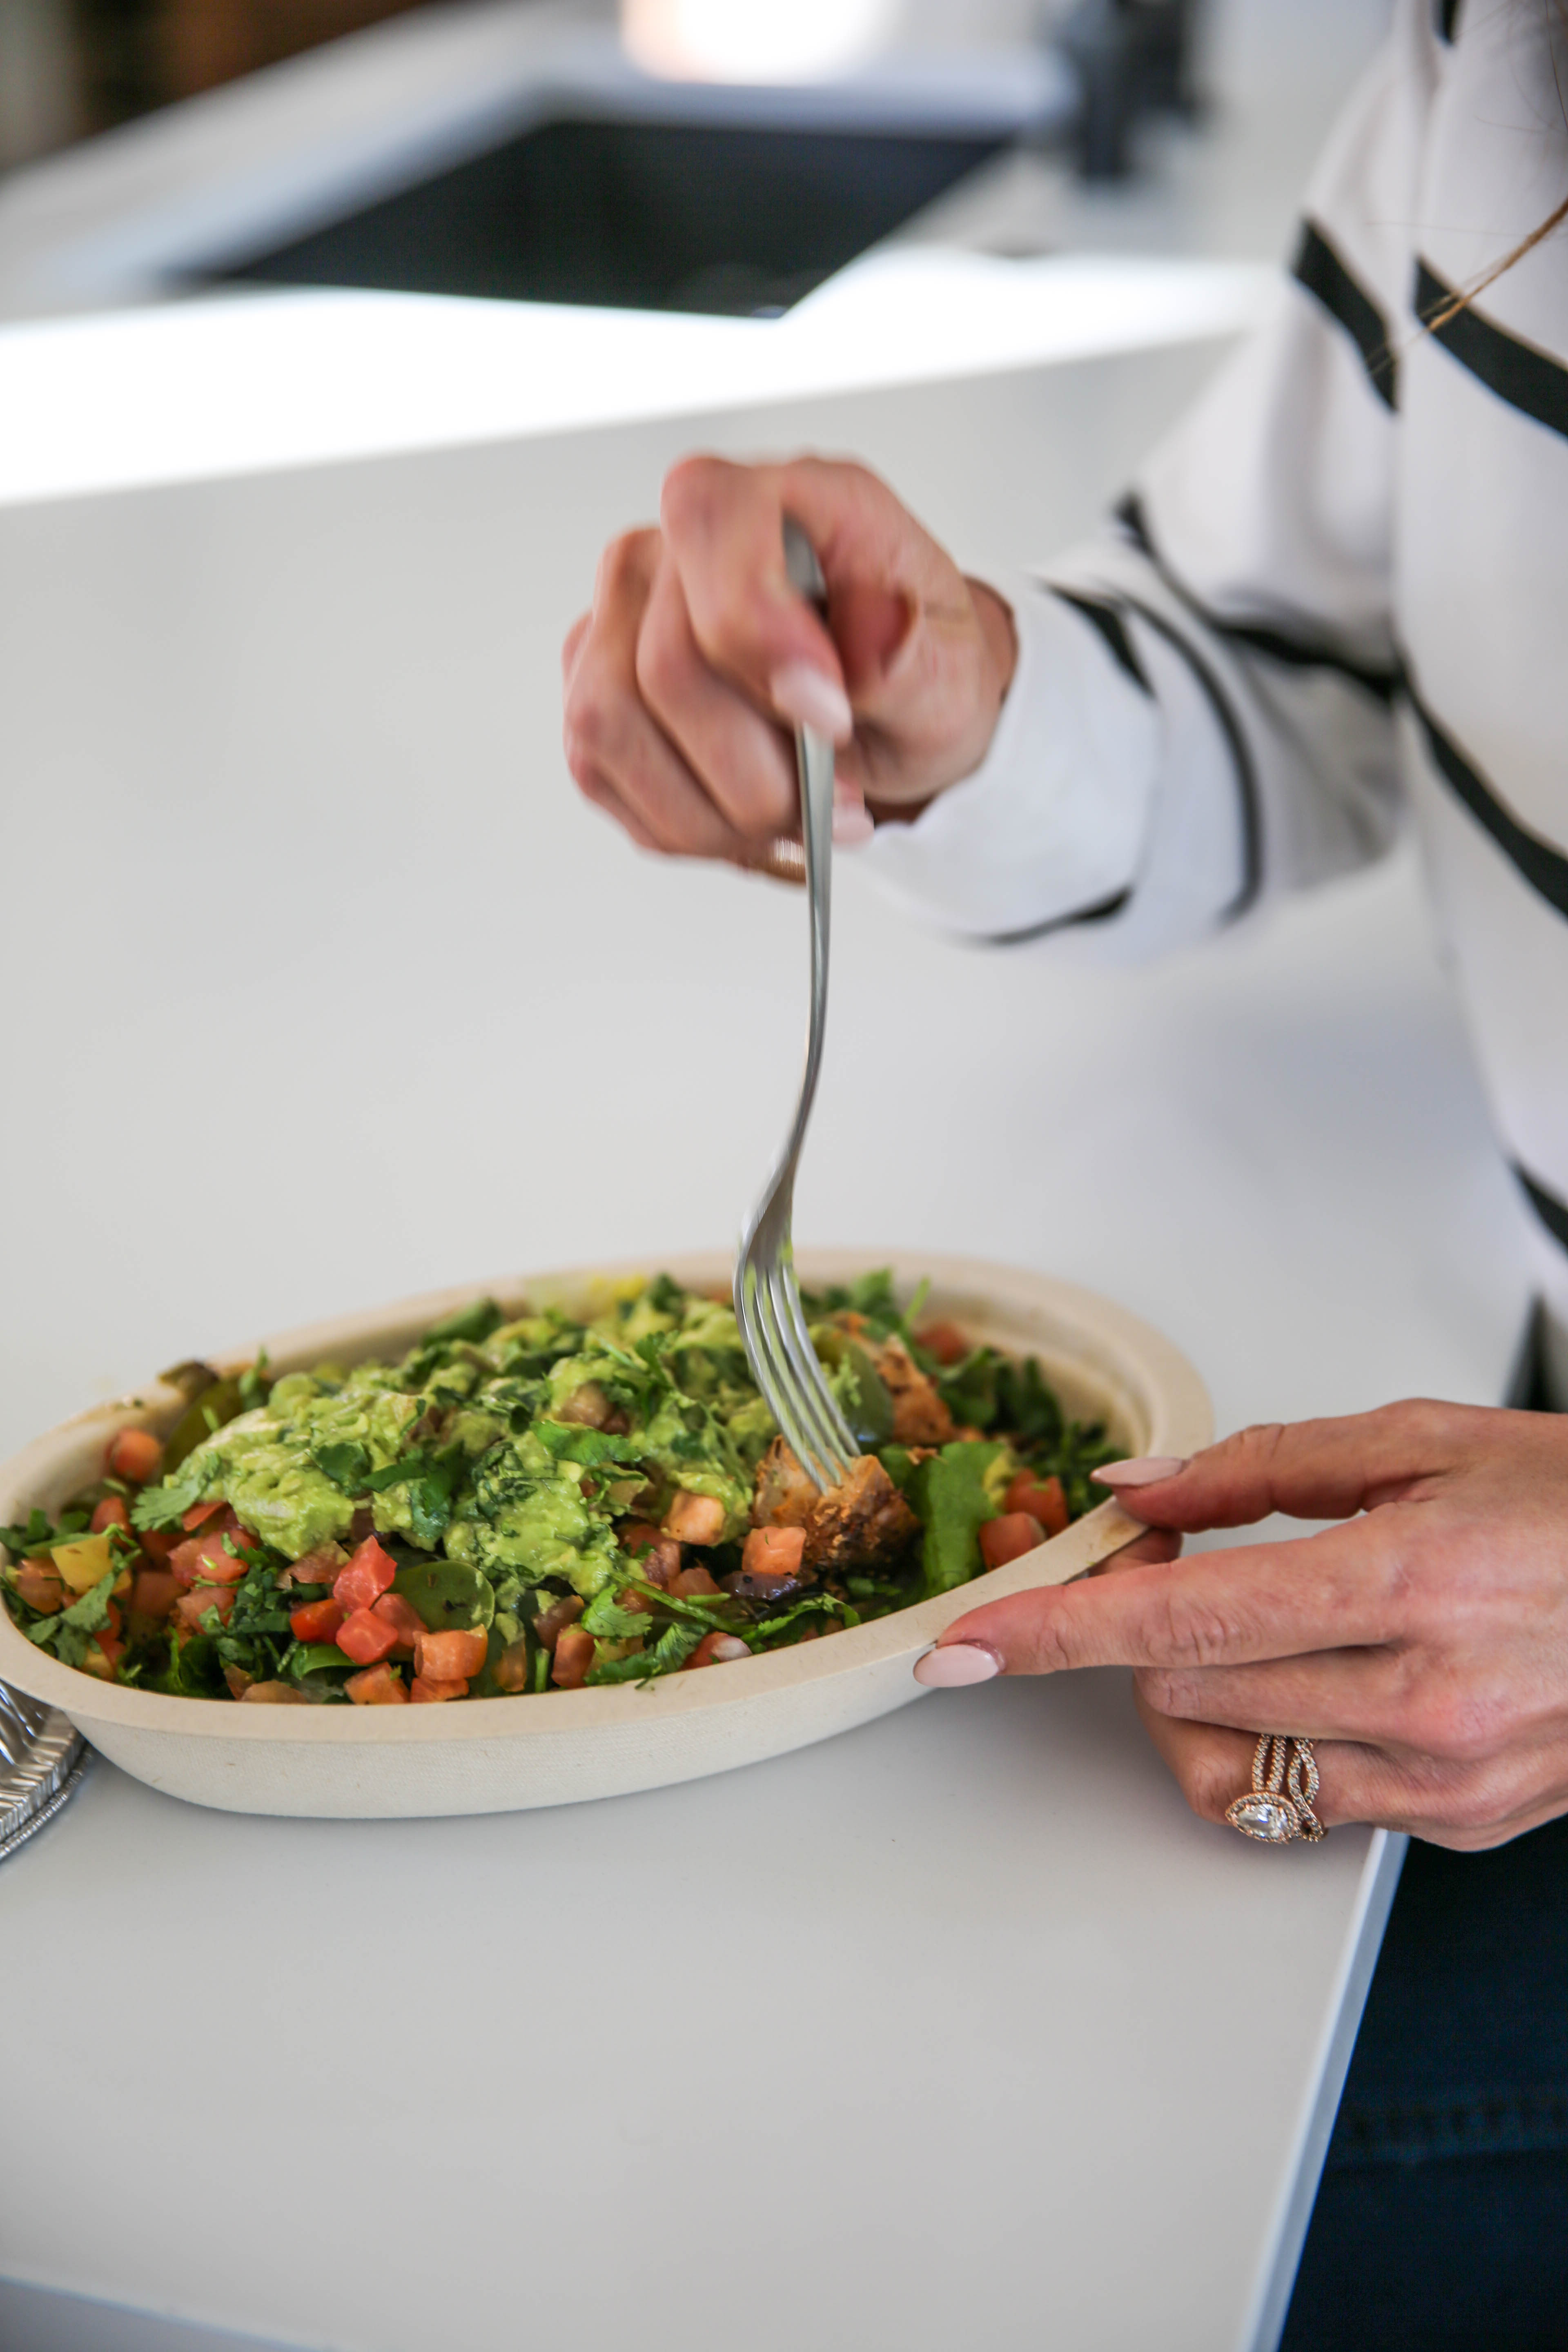 PaleOMG - A Healthy Lunch Has Never Been Easier